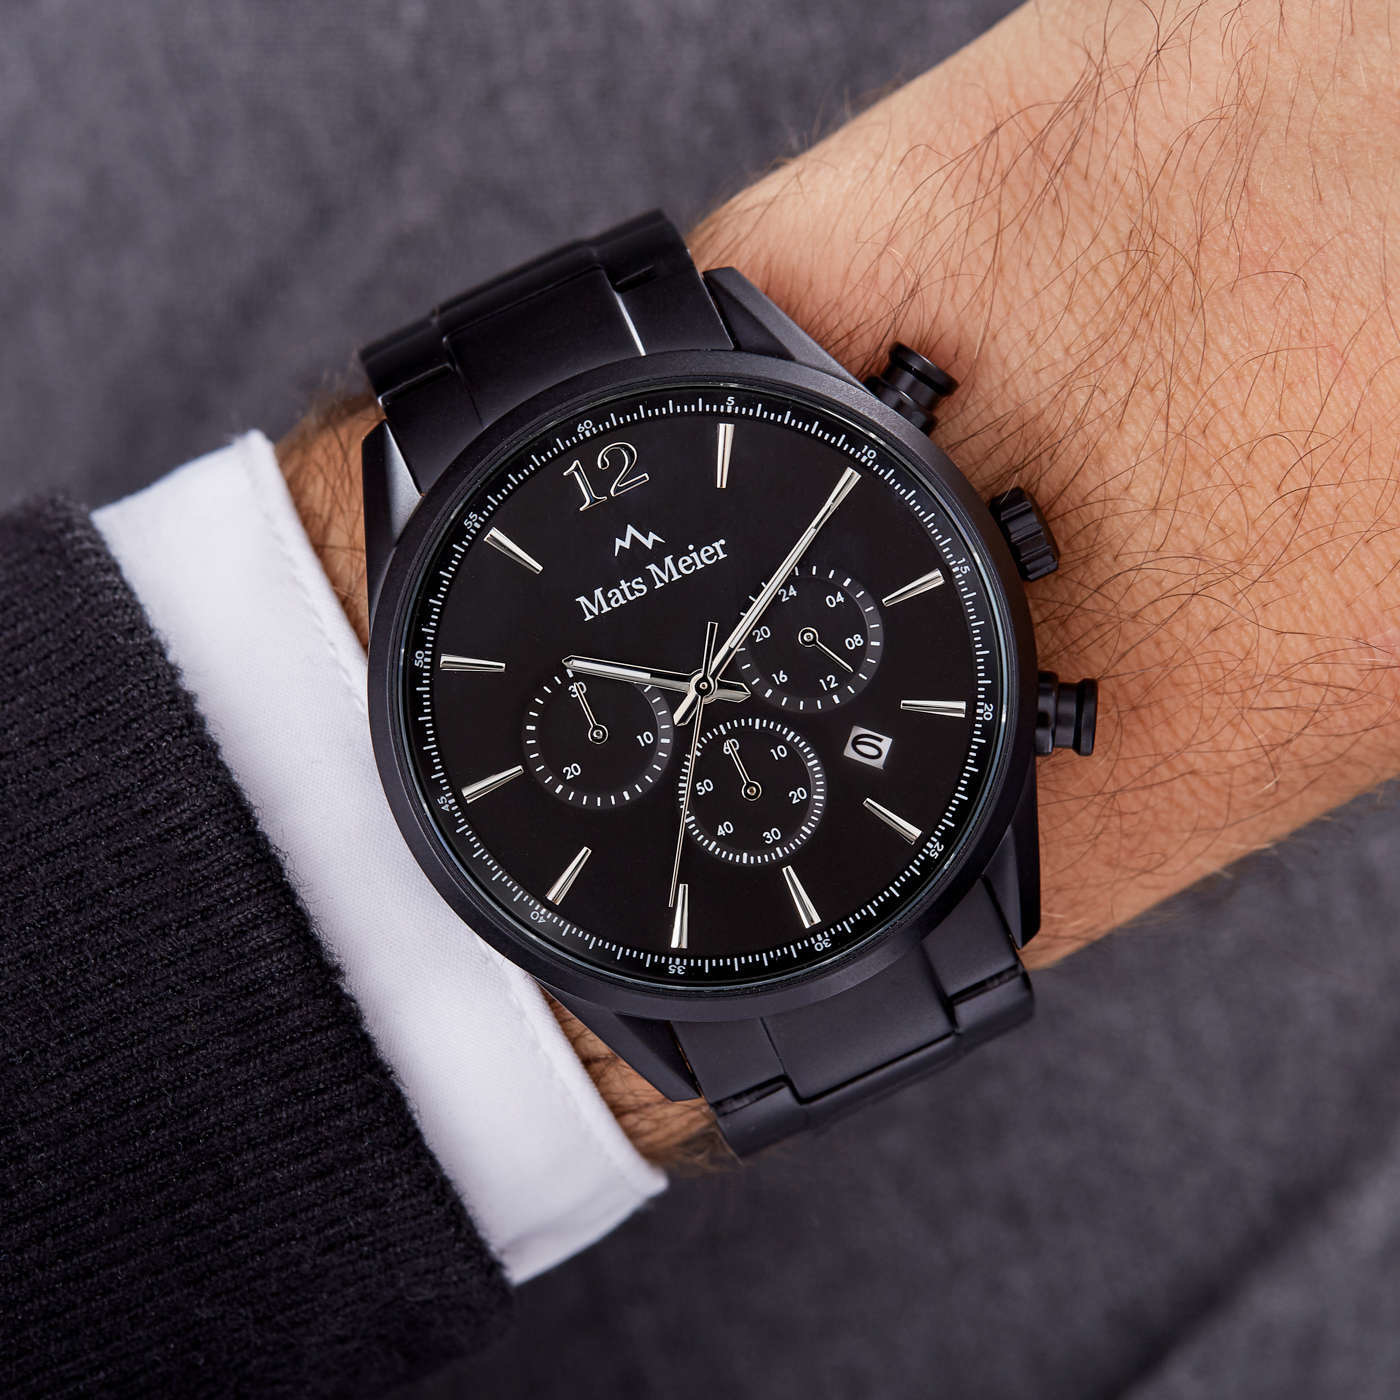 Mats Meier Grand Cornier chronograph watch matte black steel